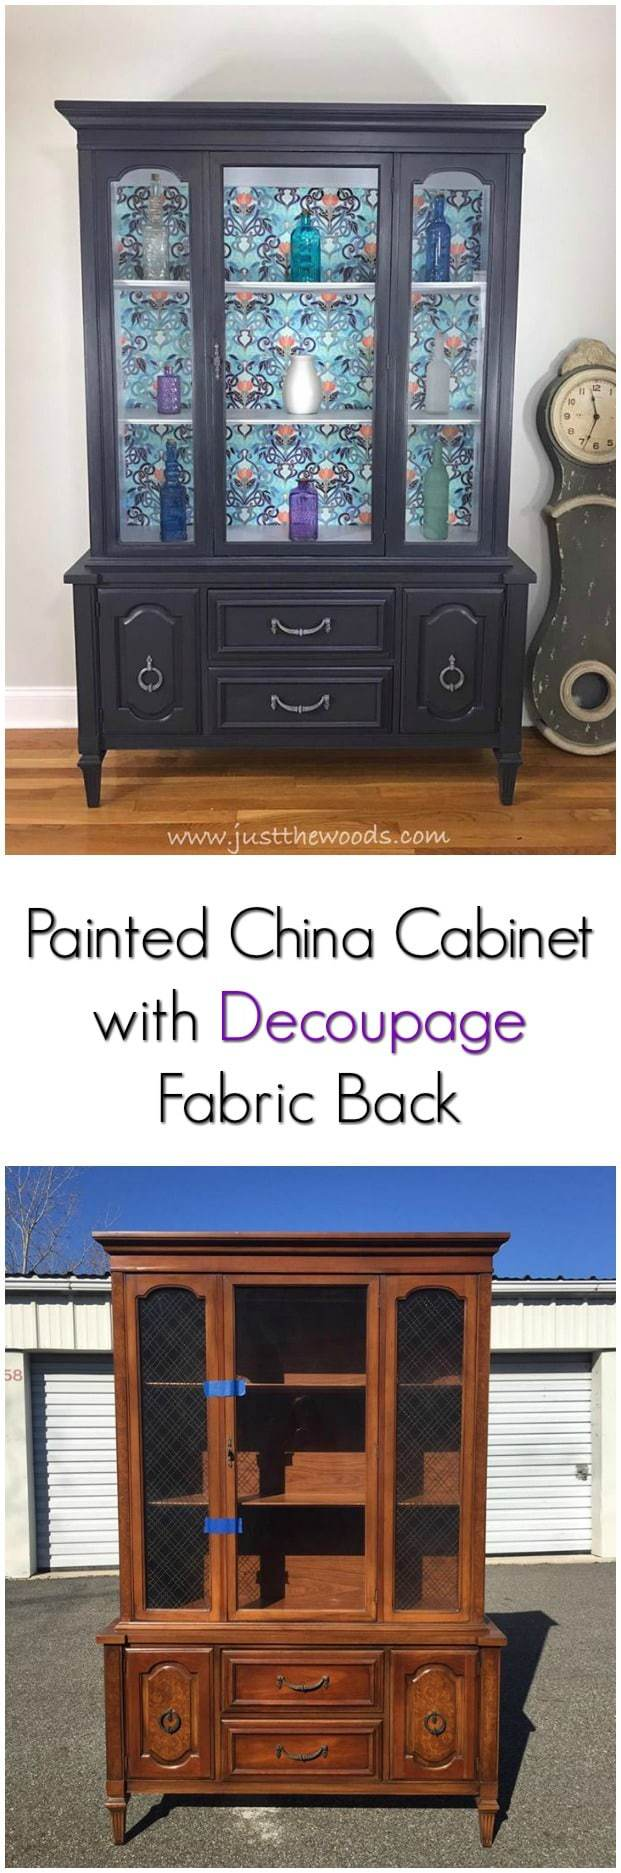 A painted china cabinet with gorgeous fabric decoupage. Deep gray with purple undertones make this painted china cabinet amazing. #paintedfurniture #paintedcabinet #furnituremakeover #paintedchinacabinet #furnituredecoupage #paintedfurnitureideas #fabricdecoupage